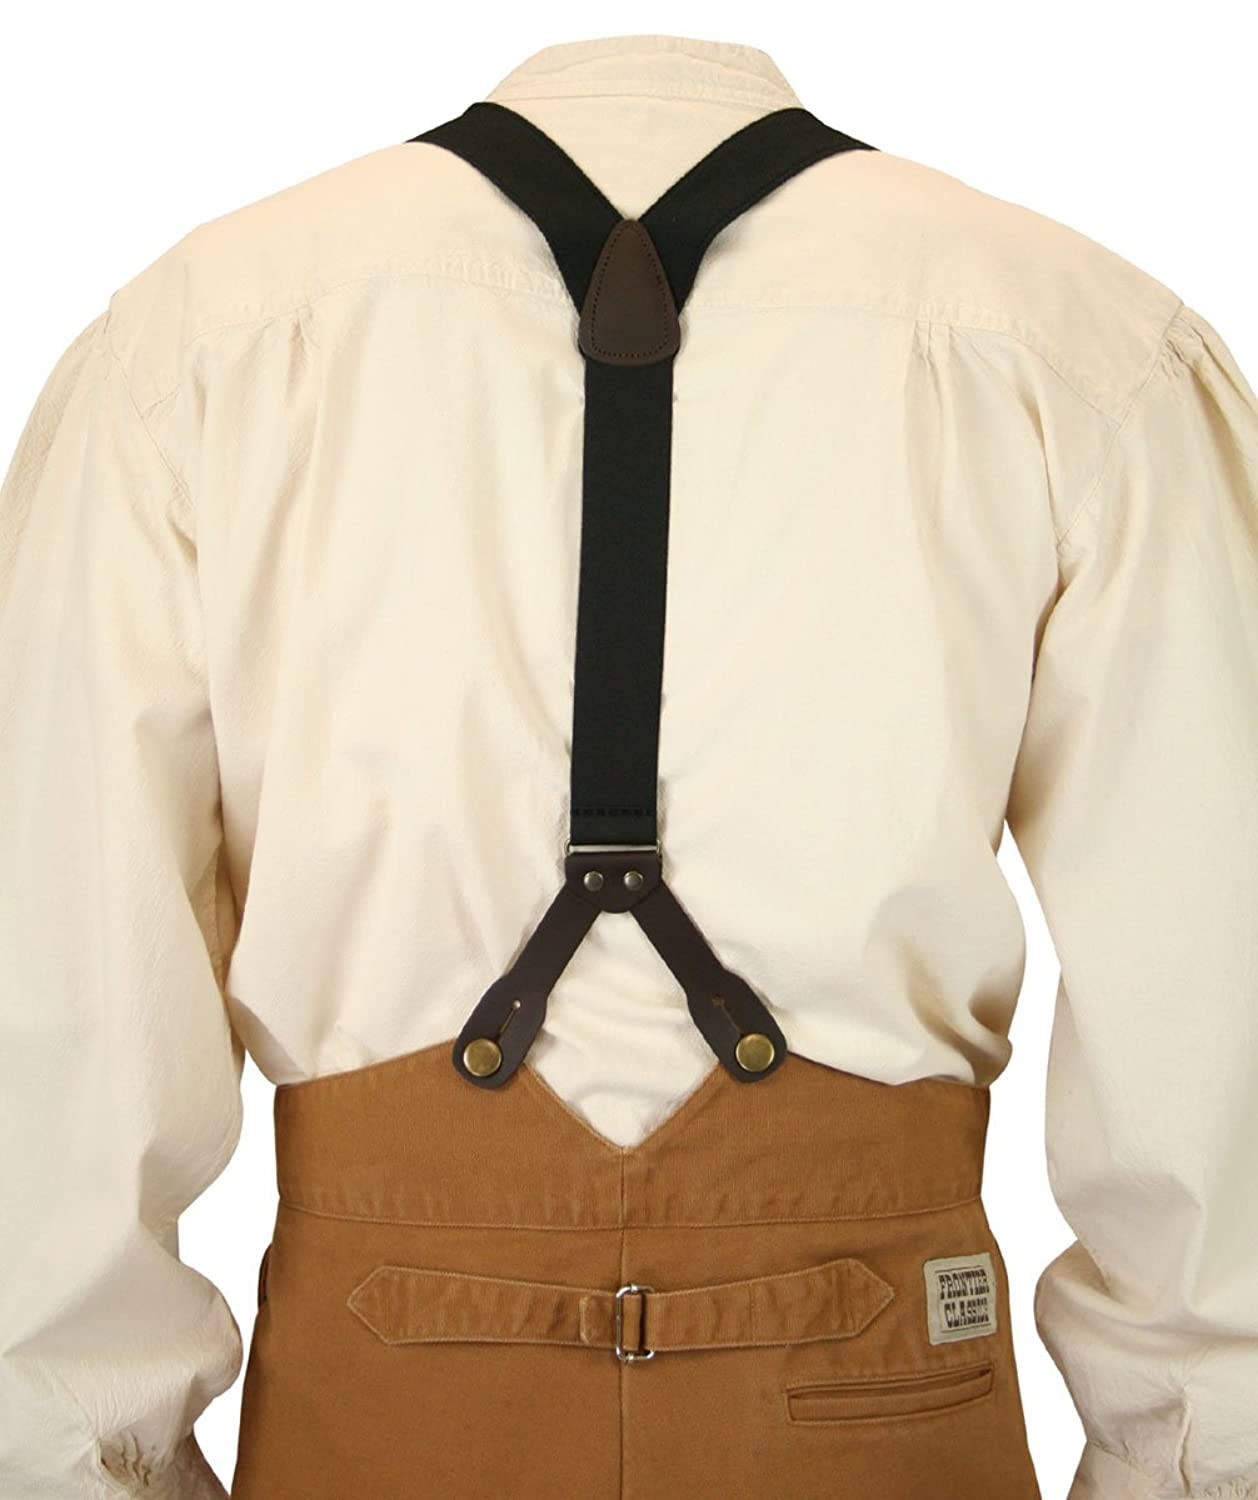 1920s Men's Pants, Trousers, Plus Fours, Knickers Historical Emporium Mens Canvas Stagecoach Y-Back Suspenders $27.95 AT vintagedancer.com